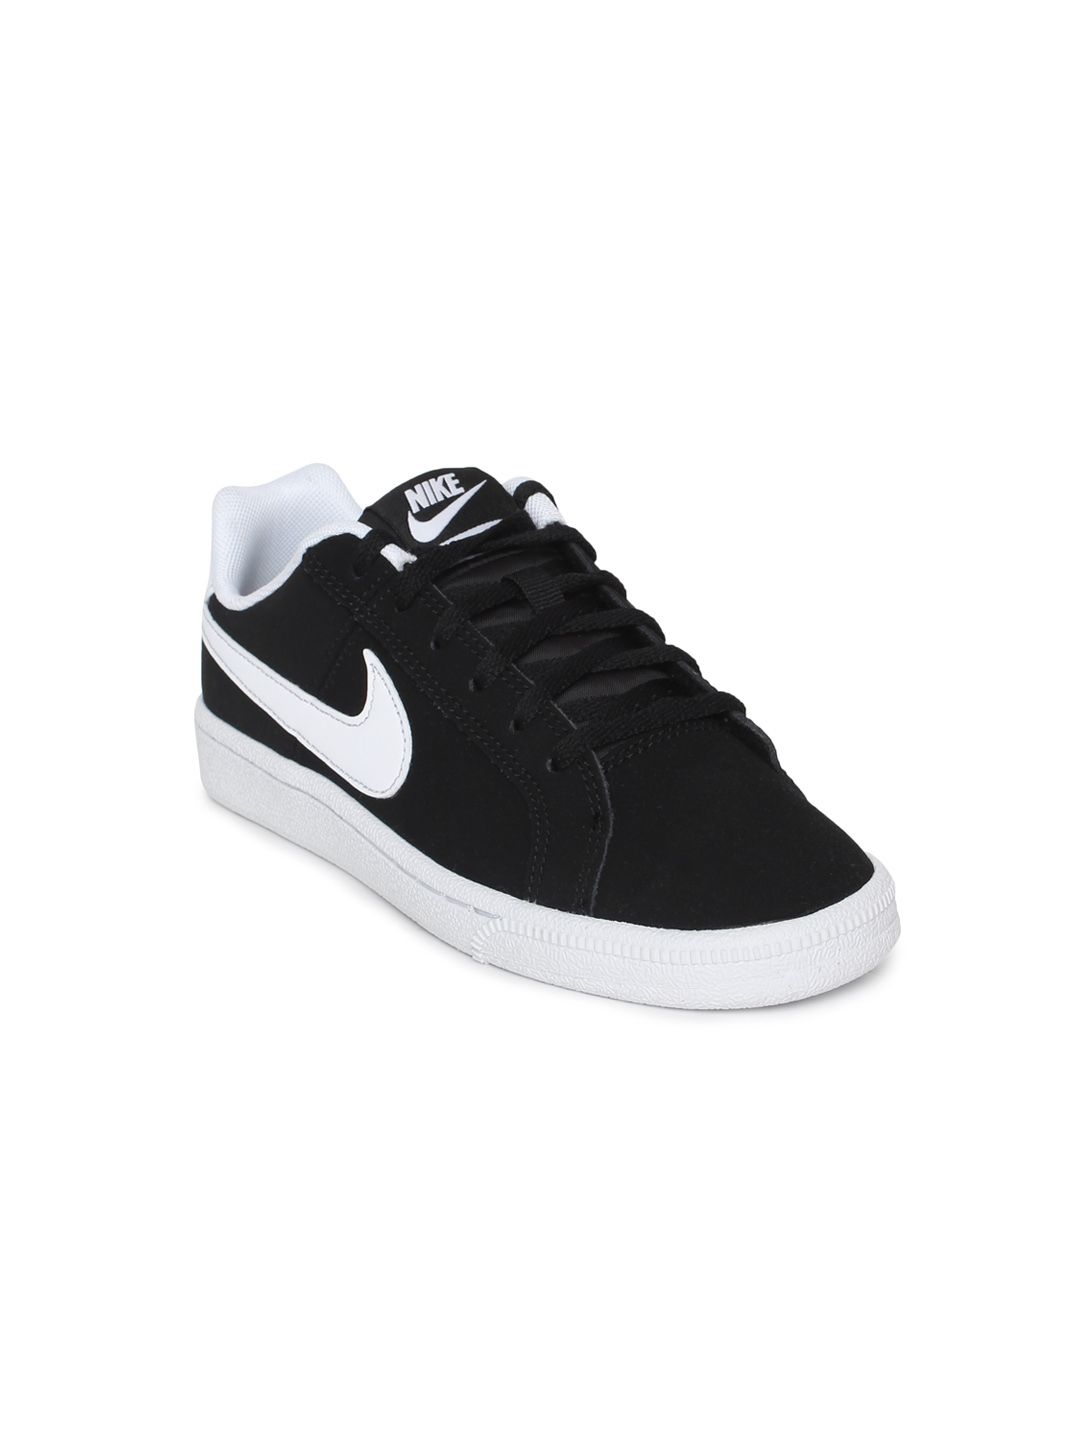 a6ca05a2a Buy Nike Boys Black Solid Court Royale (GS) Sneakers - Casual Shoes ...